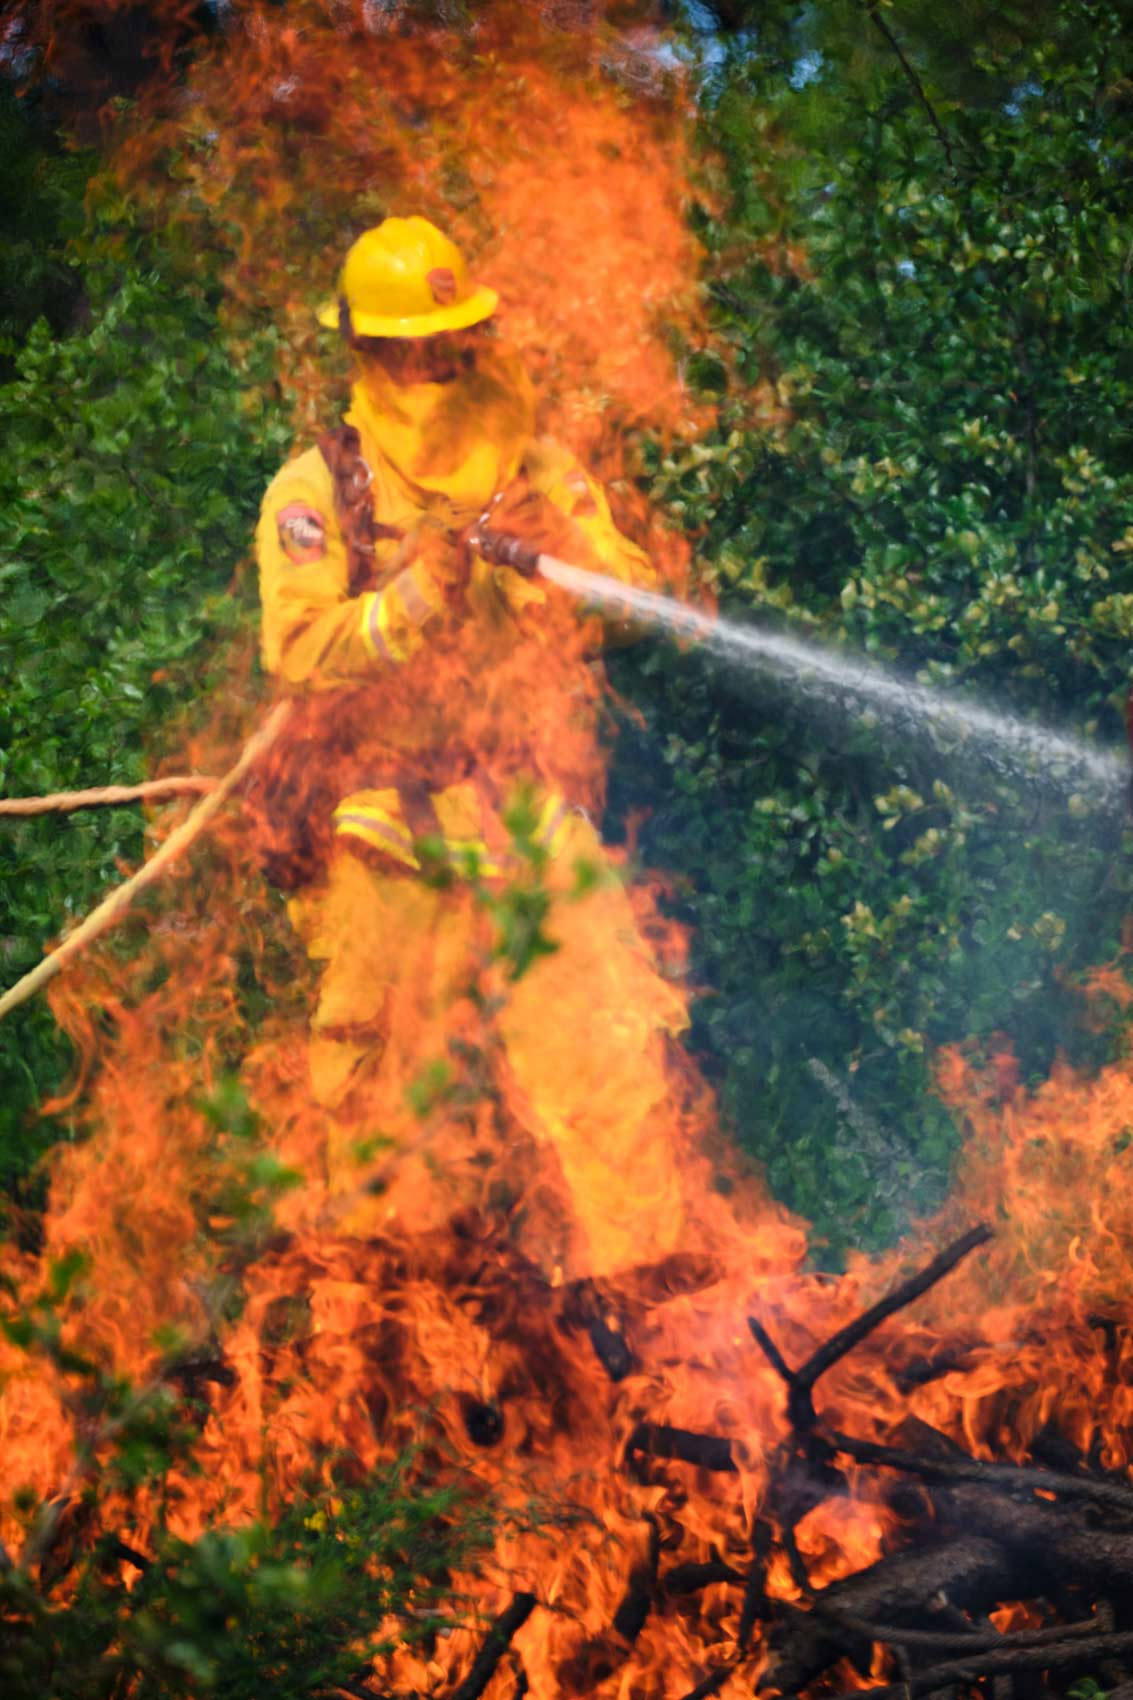 Firefighter Hoses Down Fire Through the Flames